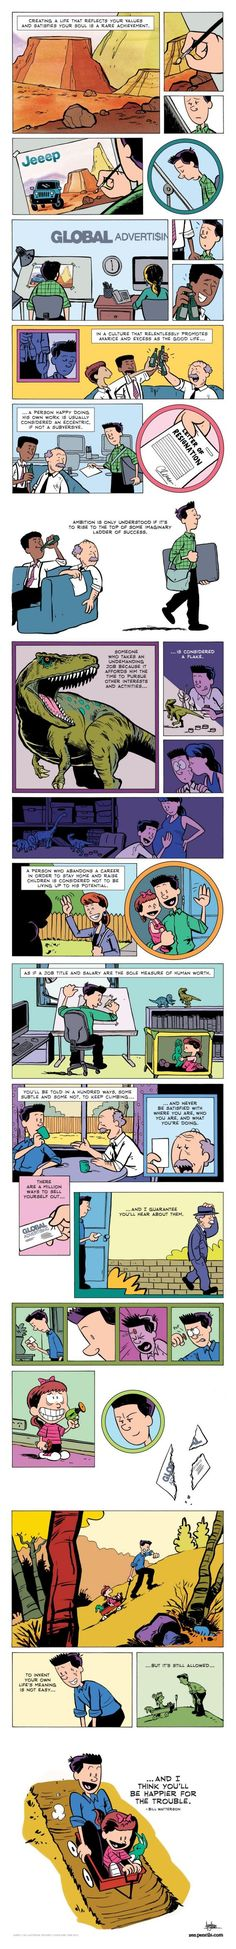 Very Good Advice From Bill Watterson, in Comic Strip Form